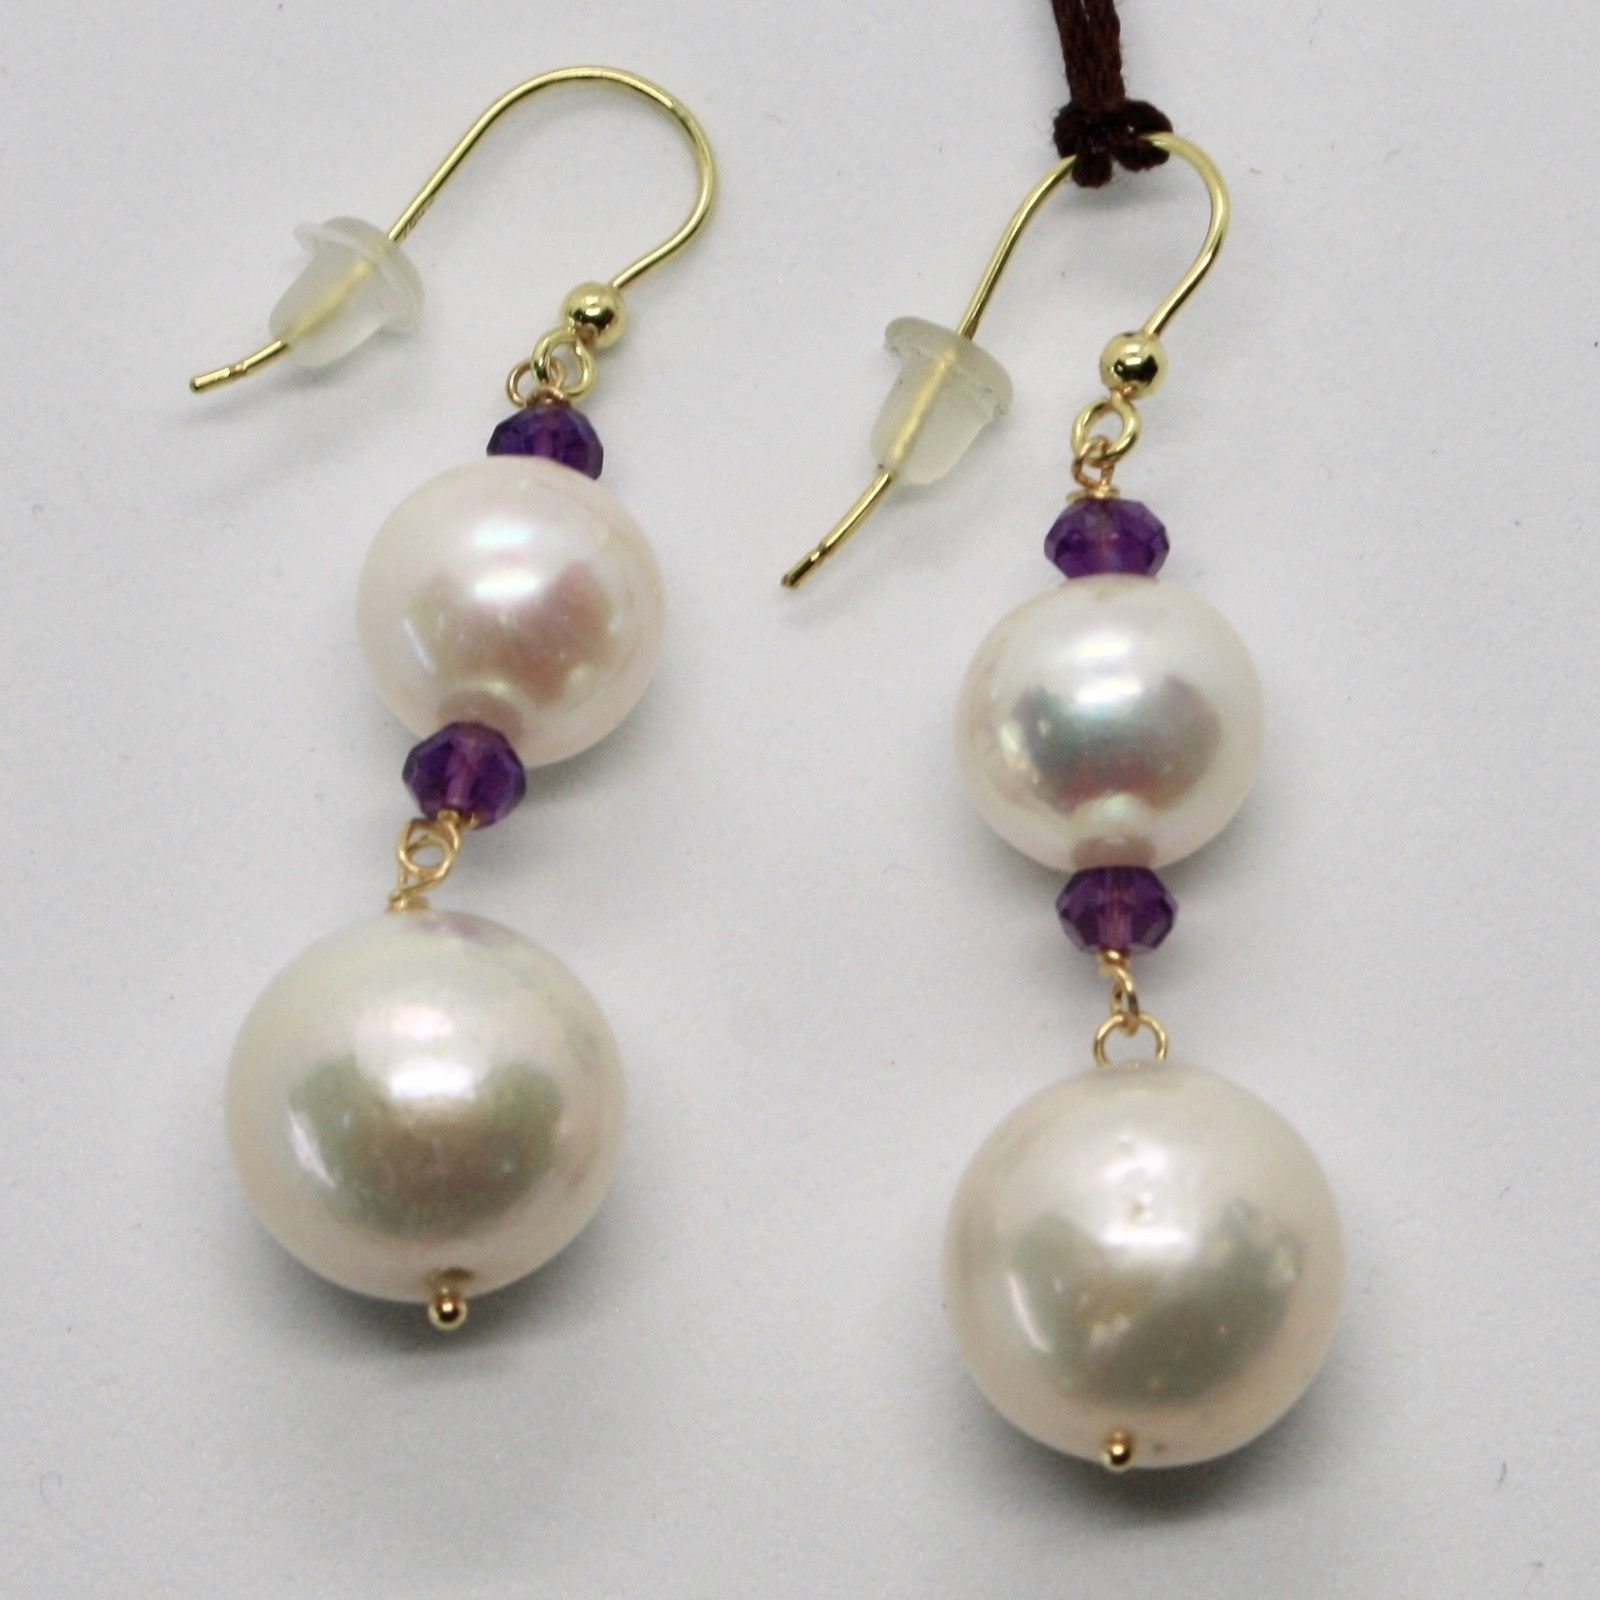 YELLOW GOLD EARRINGS 18KT 750 PEARLS OF WATER DOLCE AND AMETHYSTS MADE IN ITALY